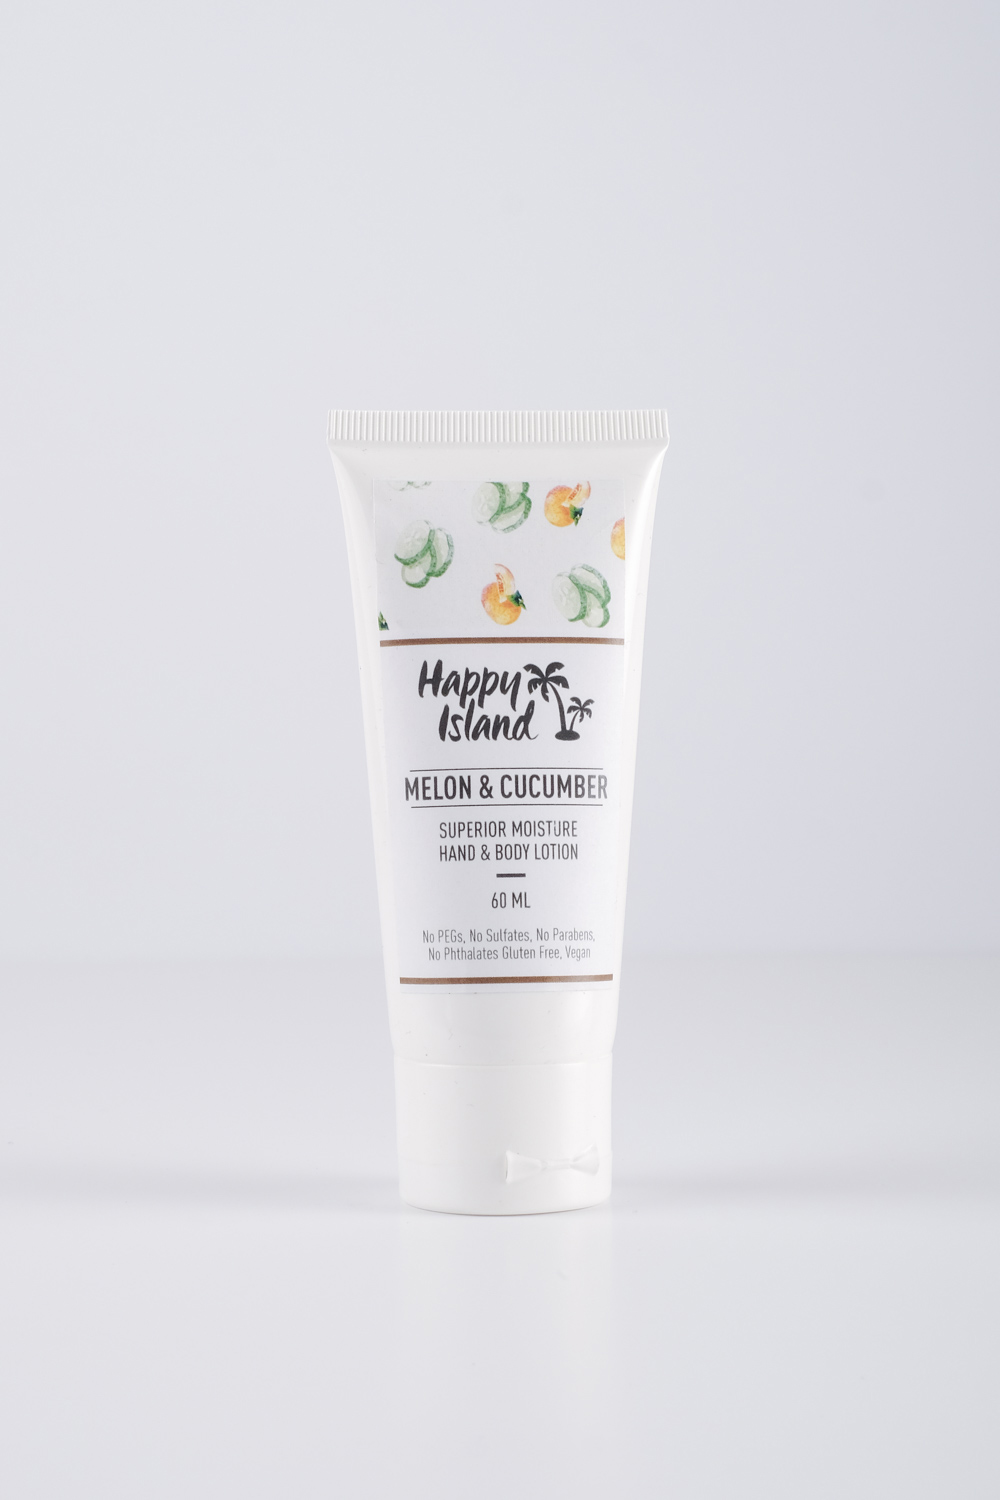 Happy Island Melon & Cucumber Scented Lotion — A real fresh fragrance of cucumber and melon with a little light musk and light wood notes supported by fresh green mid notes.